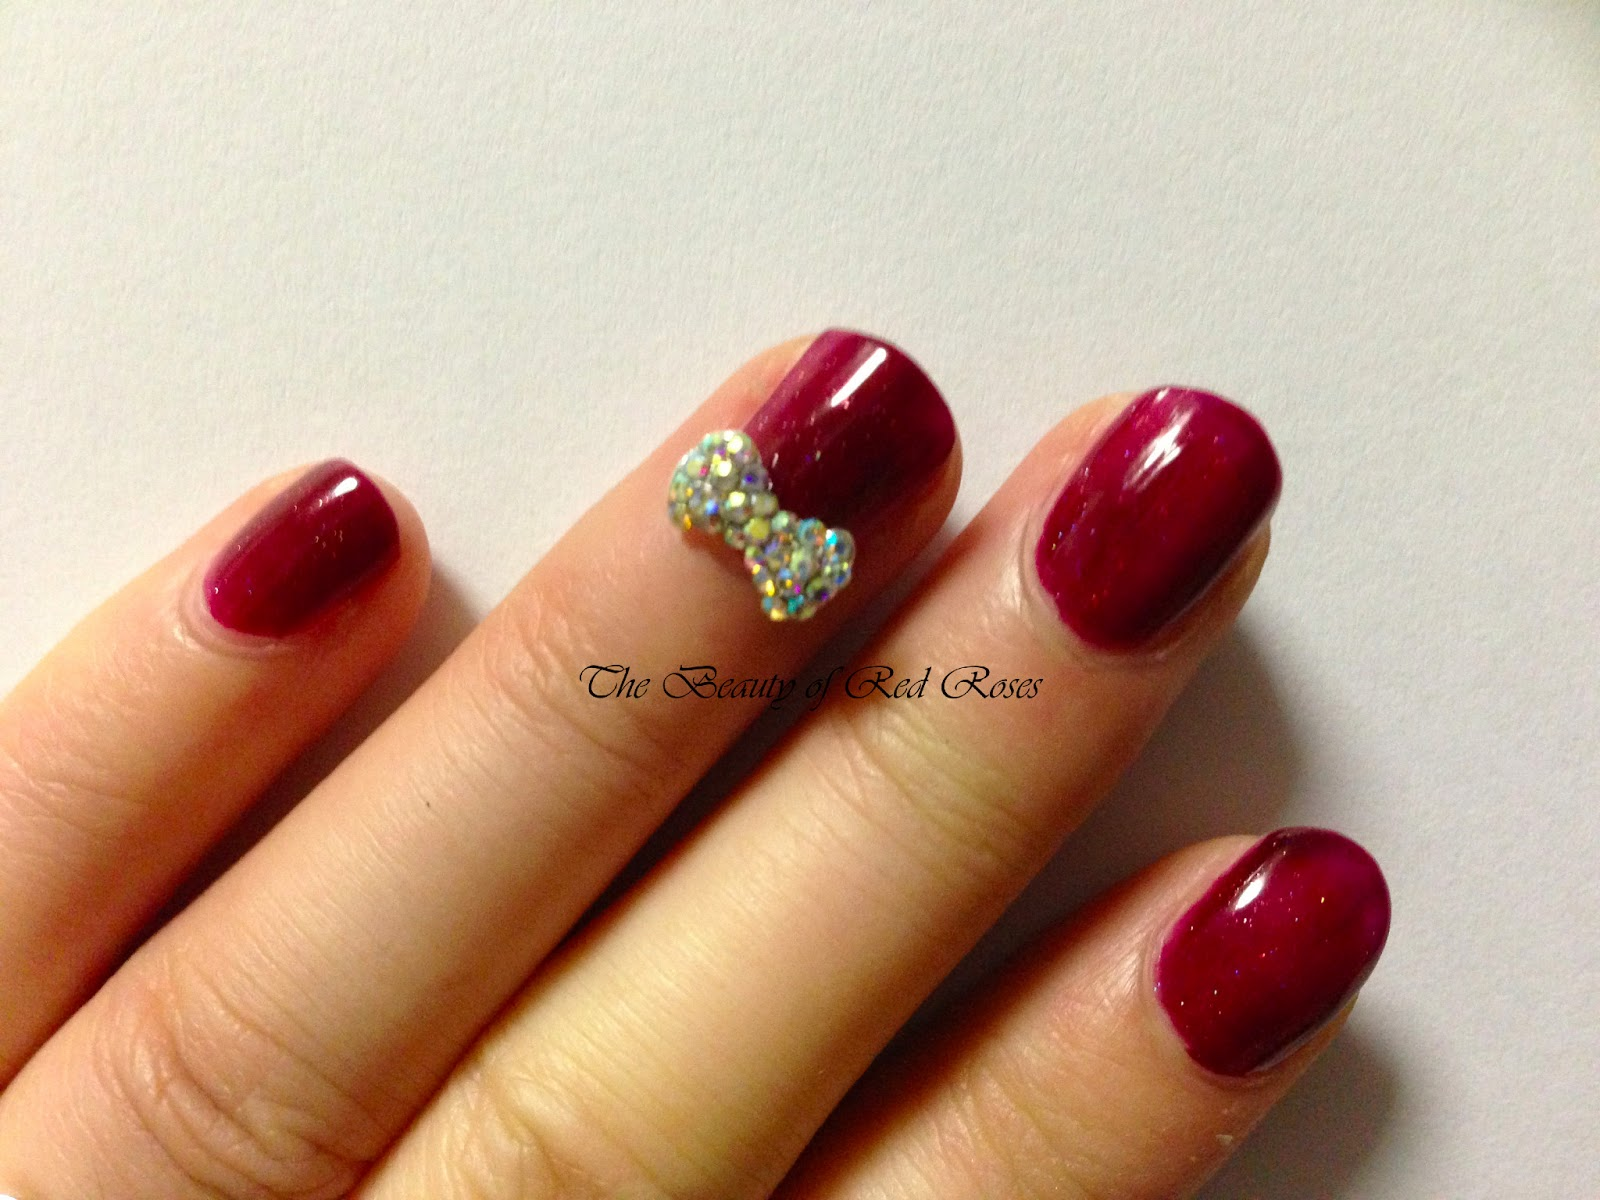 The Beauty of Red Roses: Kit Cosmetics Diamond Nail Bows